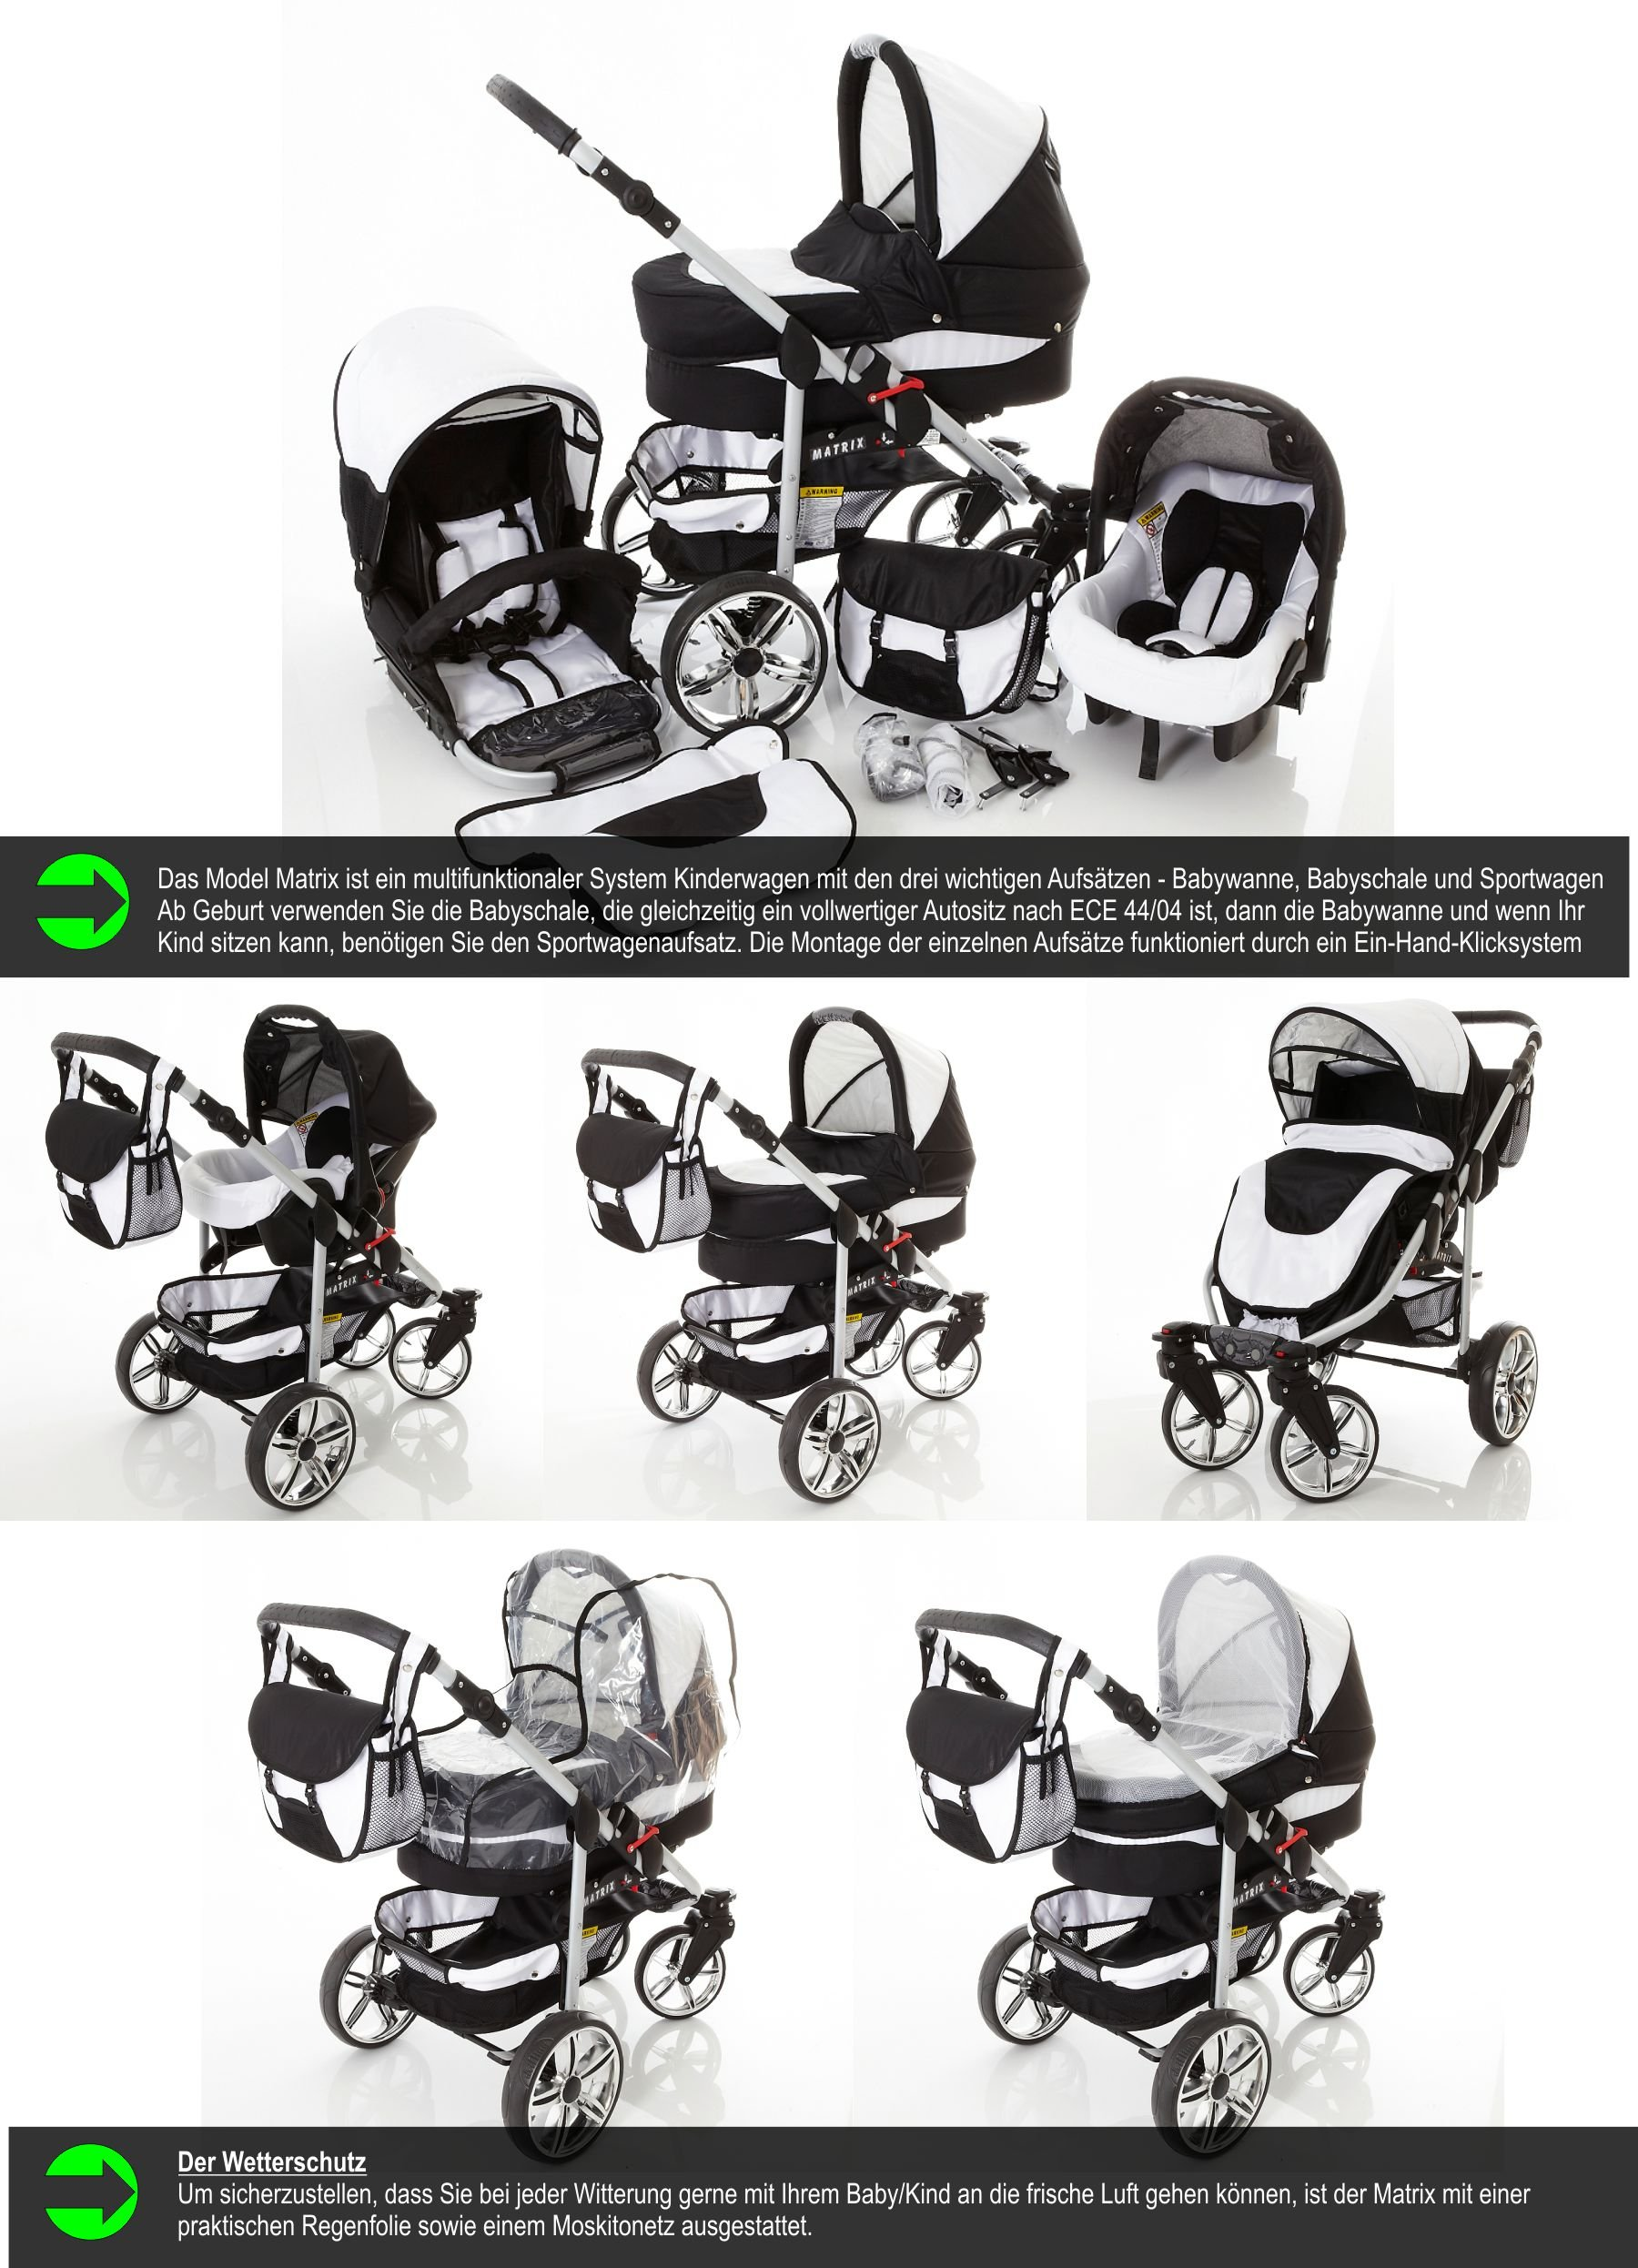 Chilly Kids Matrix II Pram & Pushchair Travel System (car seat & adapter, raincover, mosquito net, swivel wheels) 59 White & Leopard  Stroller with accessories all included 3 free items More information on www.youtube.com/Lux4Kids Sturdy steel construction, height-adjustable handlebars, adjustable hood hood, converts into a stroller and many pl Made in the EU (DIN EN1888/2005) 2